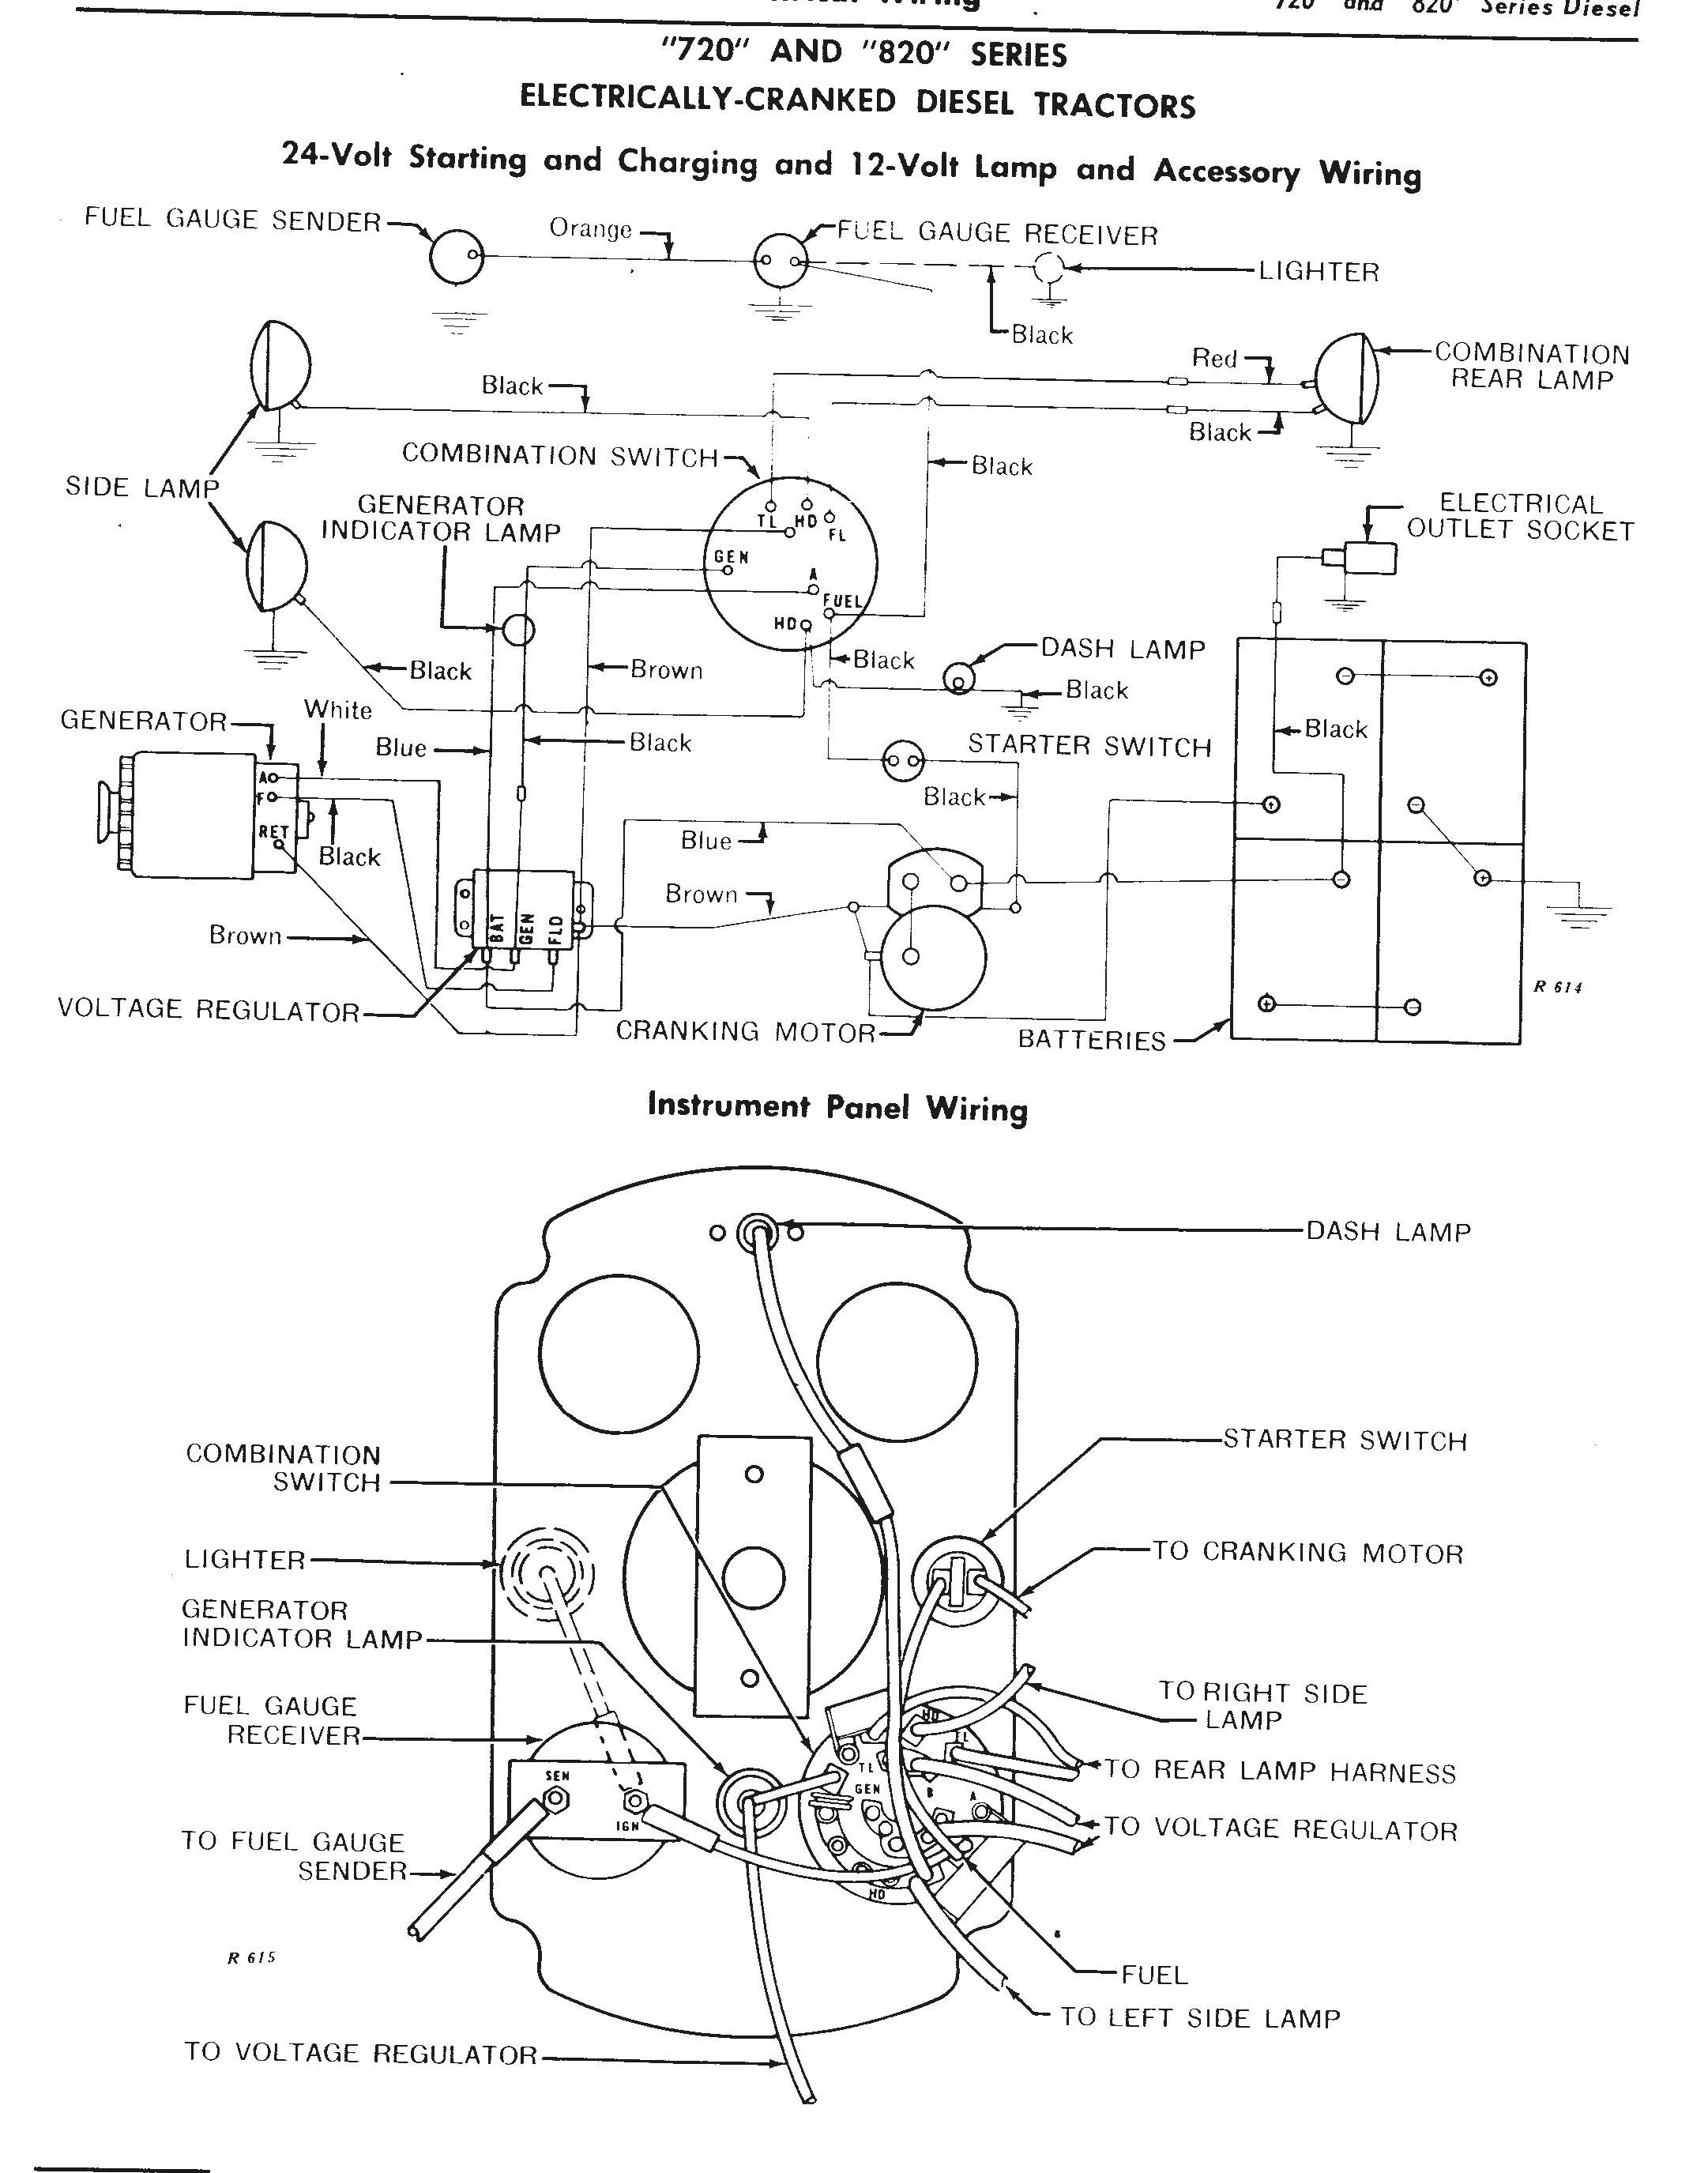 310a wiring diagram data wiring diagrams u2022 rh mikeadkinsguitar com john deere 310d electrical diagram john deere 310d electrical diagram